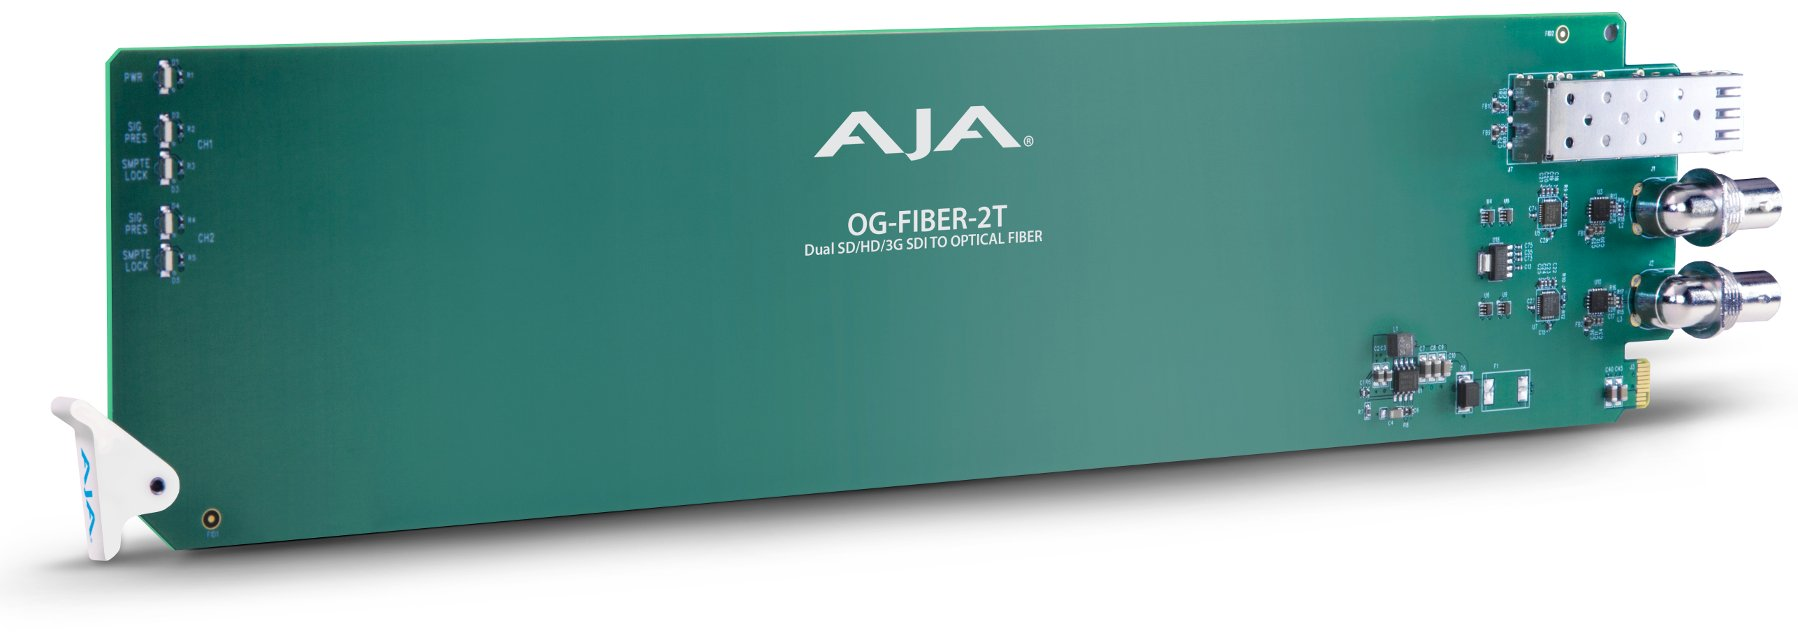 AJA Video Systems Inc OG-FIBER-2T  2-Channel openGear SDI to Fiber Converter OG-FIBER-2T